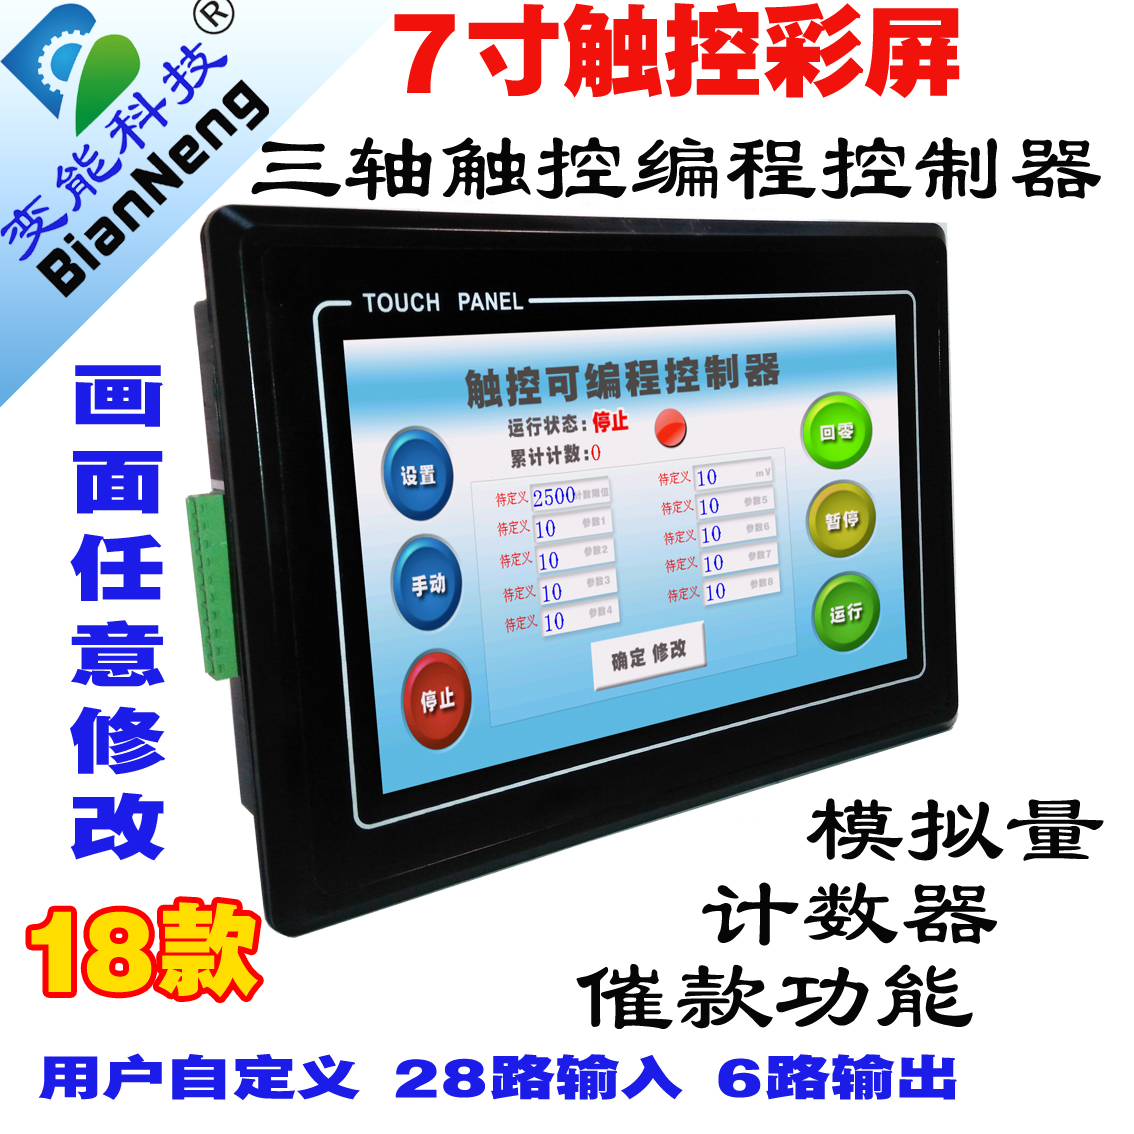 Usd 15411 Plc One Machine Stepper Motor Controller Servo Touch Screen Three Axis 7 Inch Programming